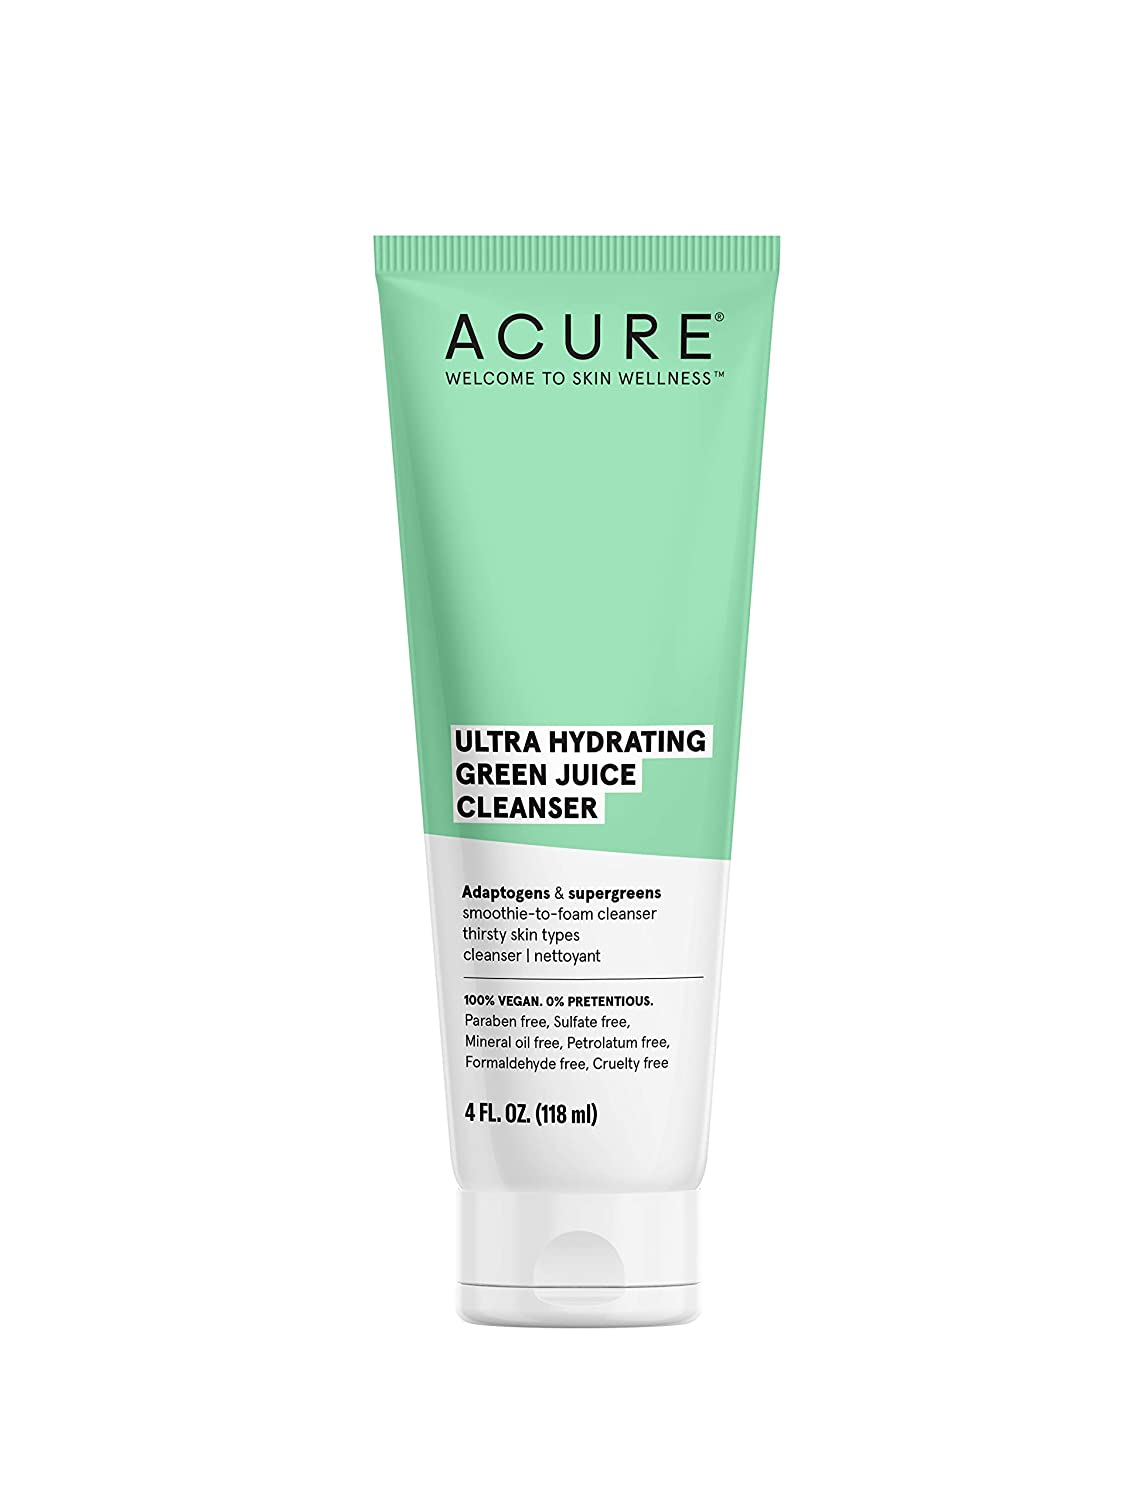 ACURE Ultra Hydrating Green Juice Cleanser | 100% Vegan | Intense Moisture for Super Thirsty Skin | Supergreens & Adaptogens - Purifies, Deep Cleanses & Refreshes | 4Fl Oz